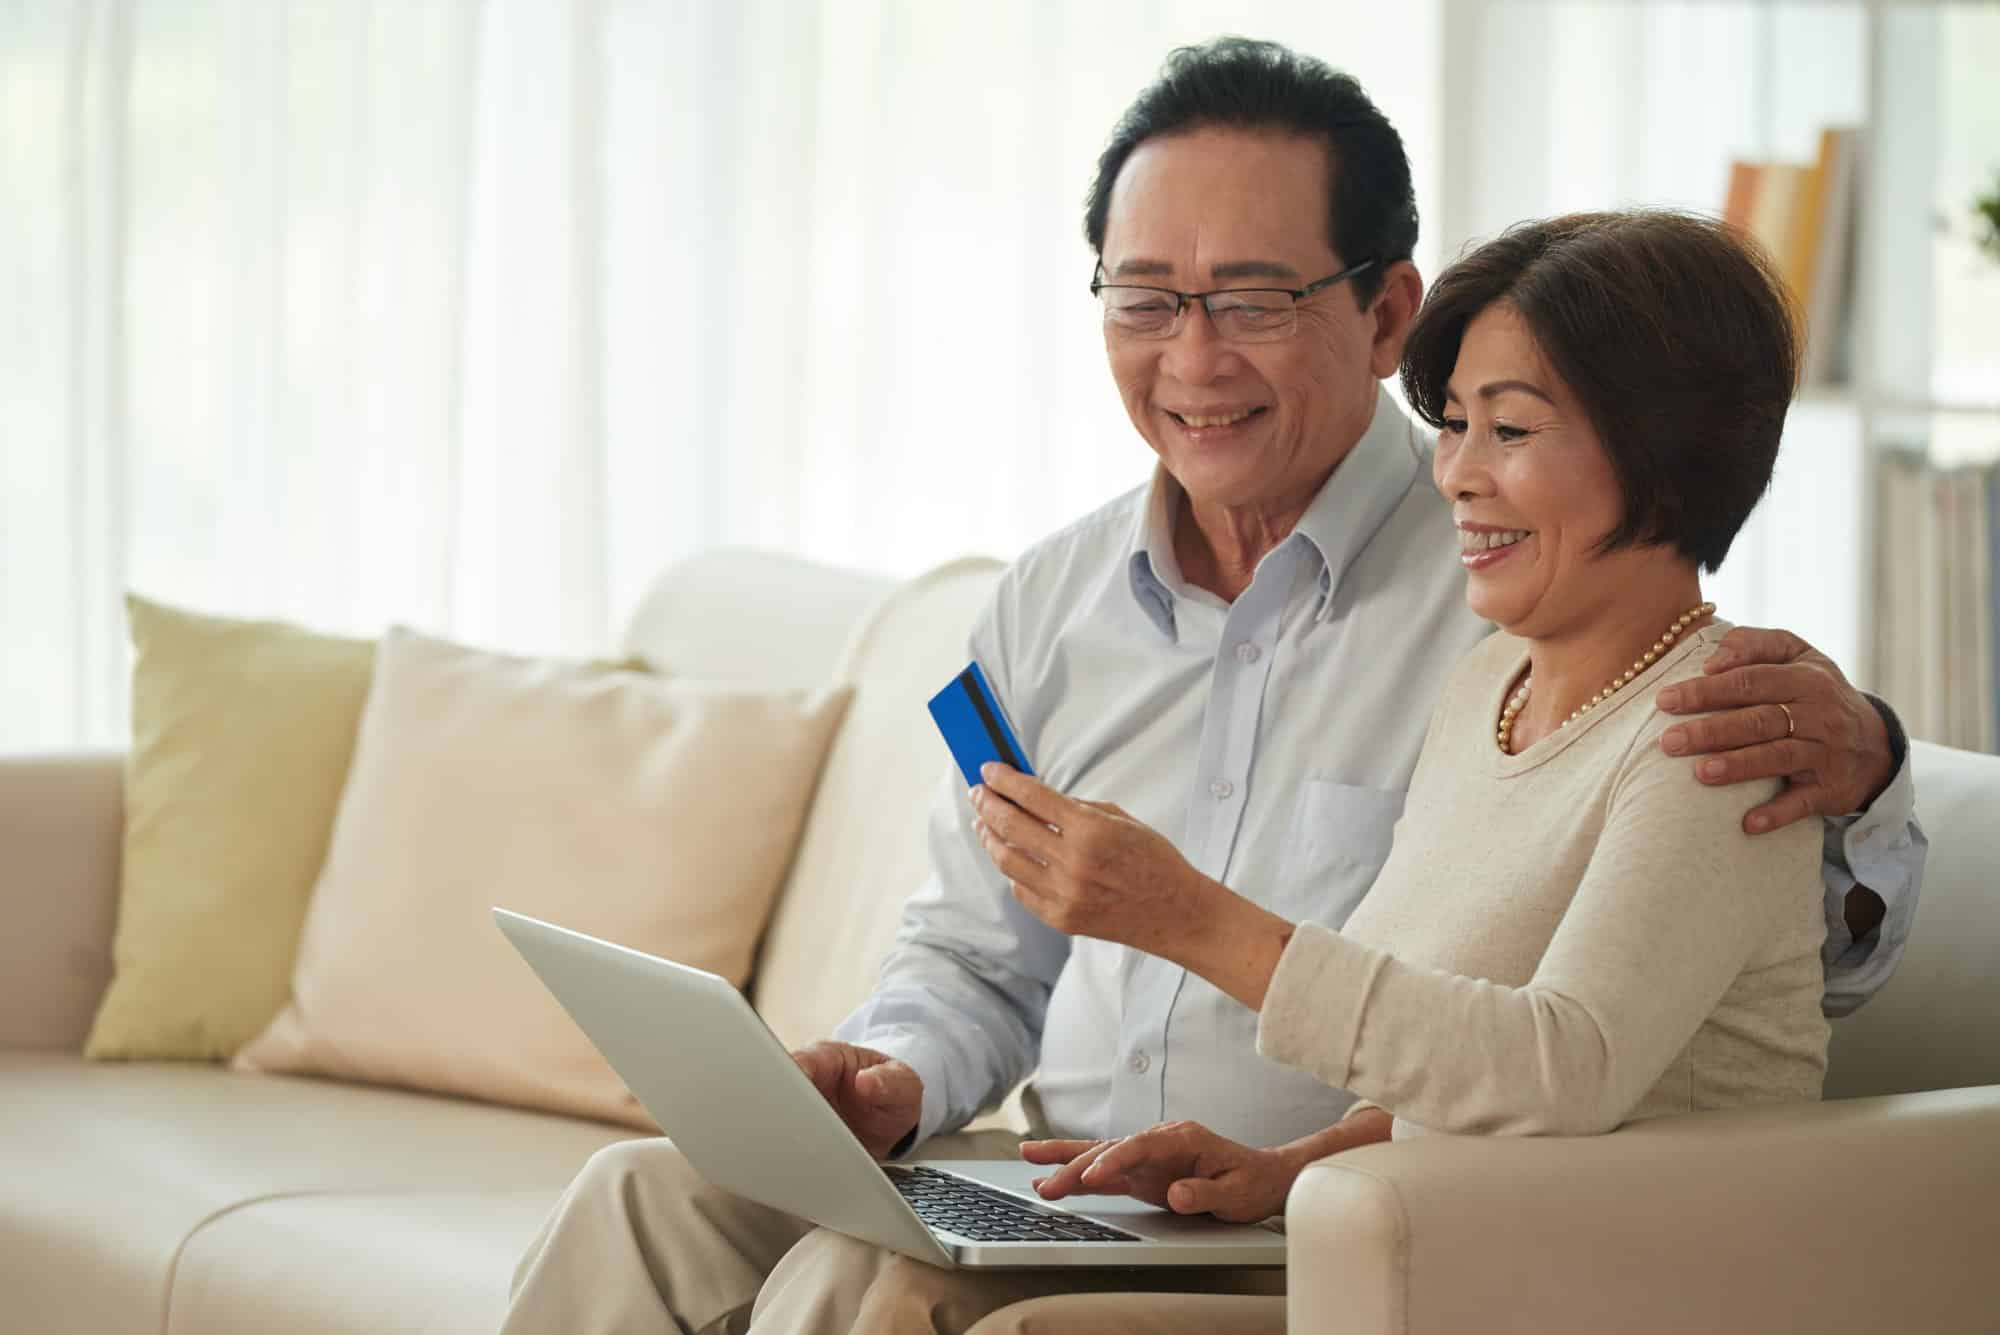 Buying an Annuity Online - Picture of Asian Couple Sitting on Couch Shopping on a Laptop